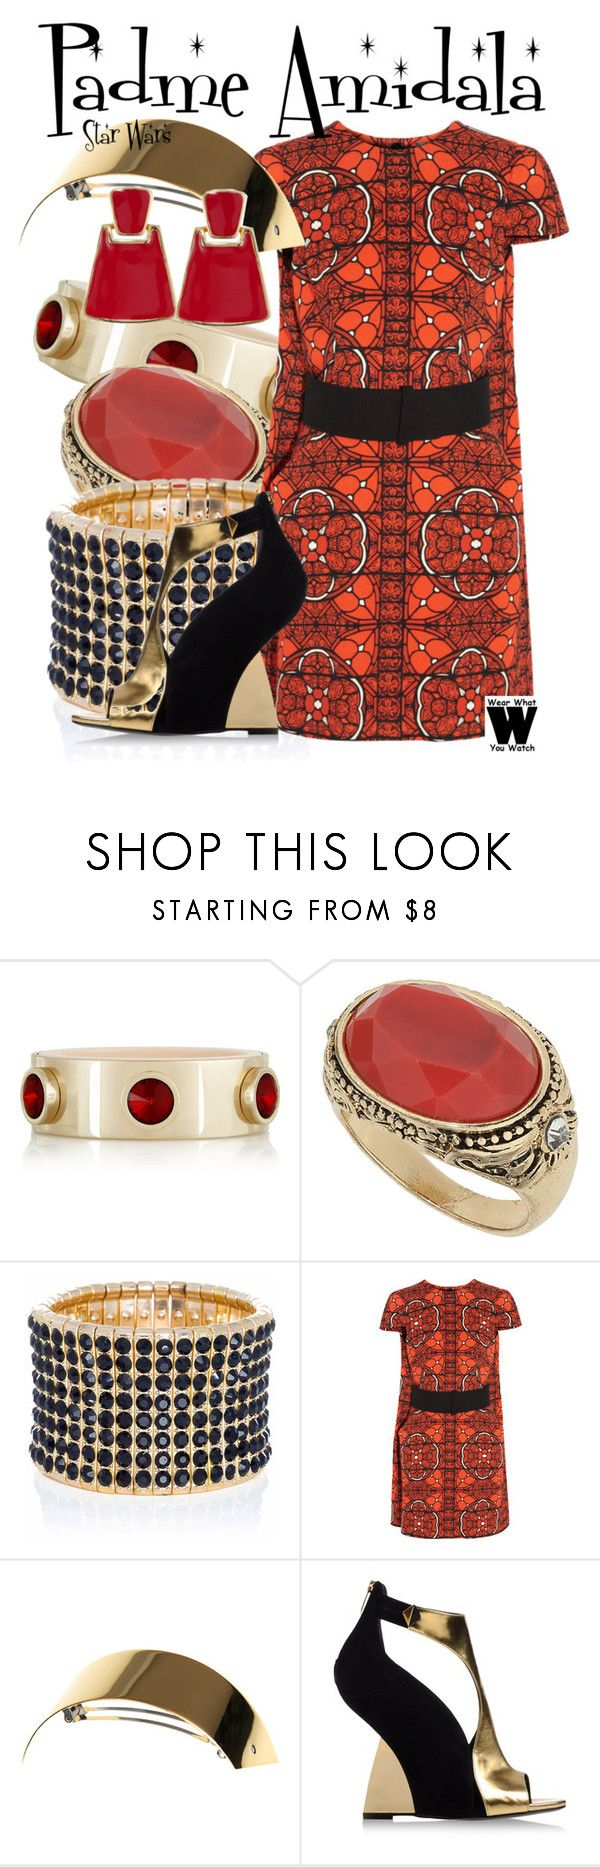 Star Wars by wearwhatyouwatch on Polyvore featuring moda, Alexander McQueen, Sergio Rossi, Ingenious Jewellery, Dorothy Perkins, Givenchy, Kenneth Jay Lane, HAIR DESIGNACCESS, wearwhatyouwatch and film